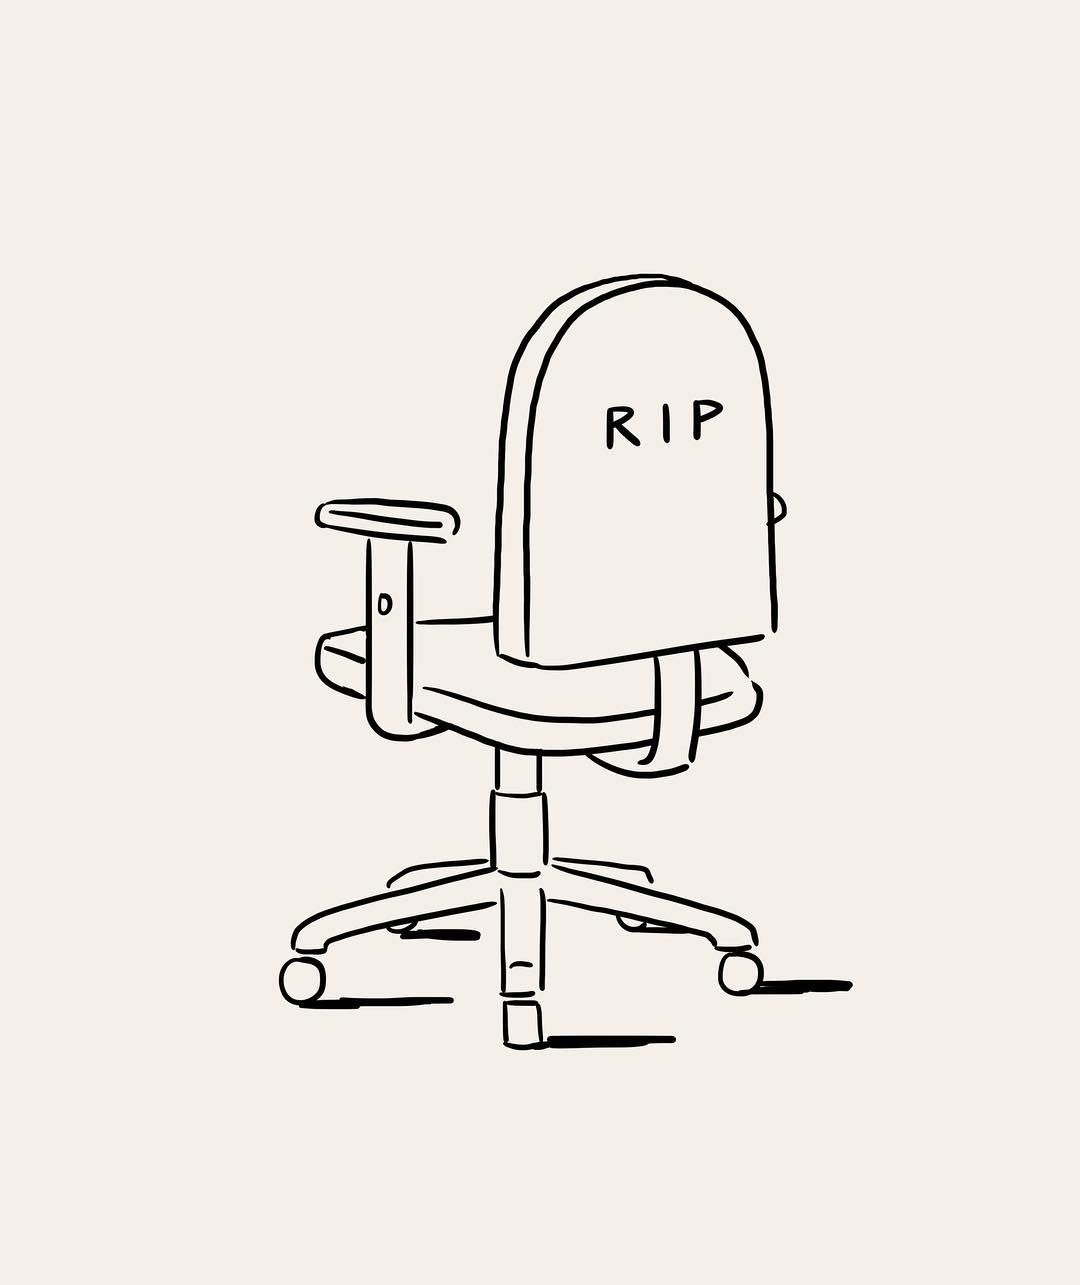 Sean O Connor Seanoconnor Instagram Photos And Videos Matt Blease Minimalist Drawing Visual Metaphor